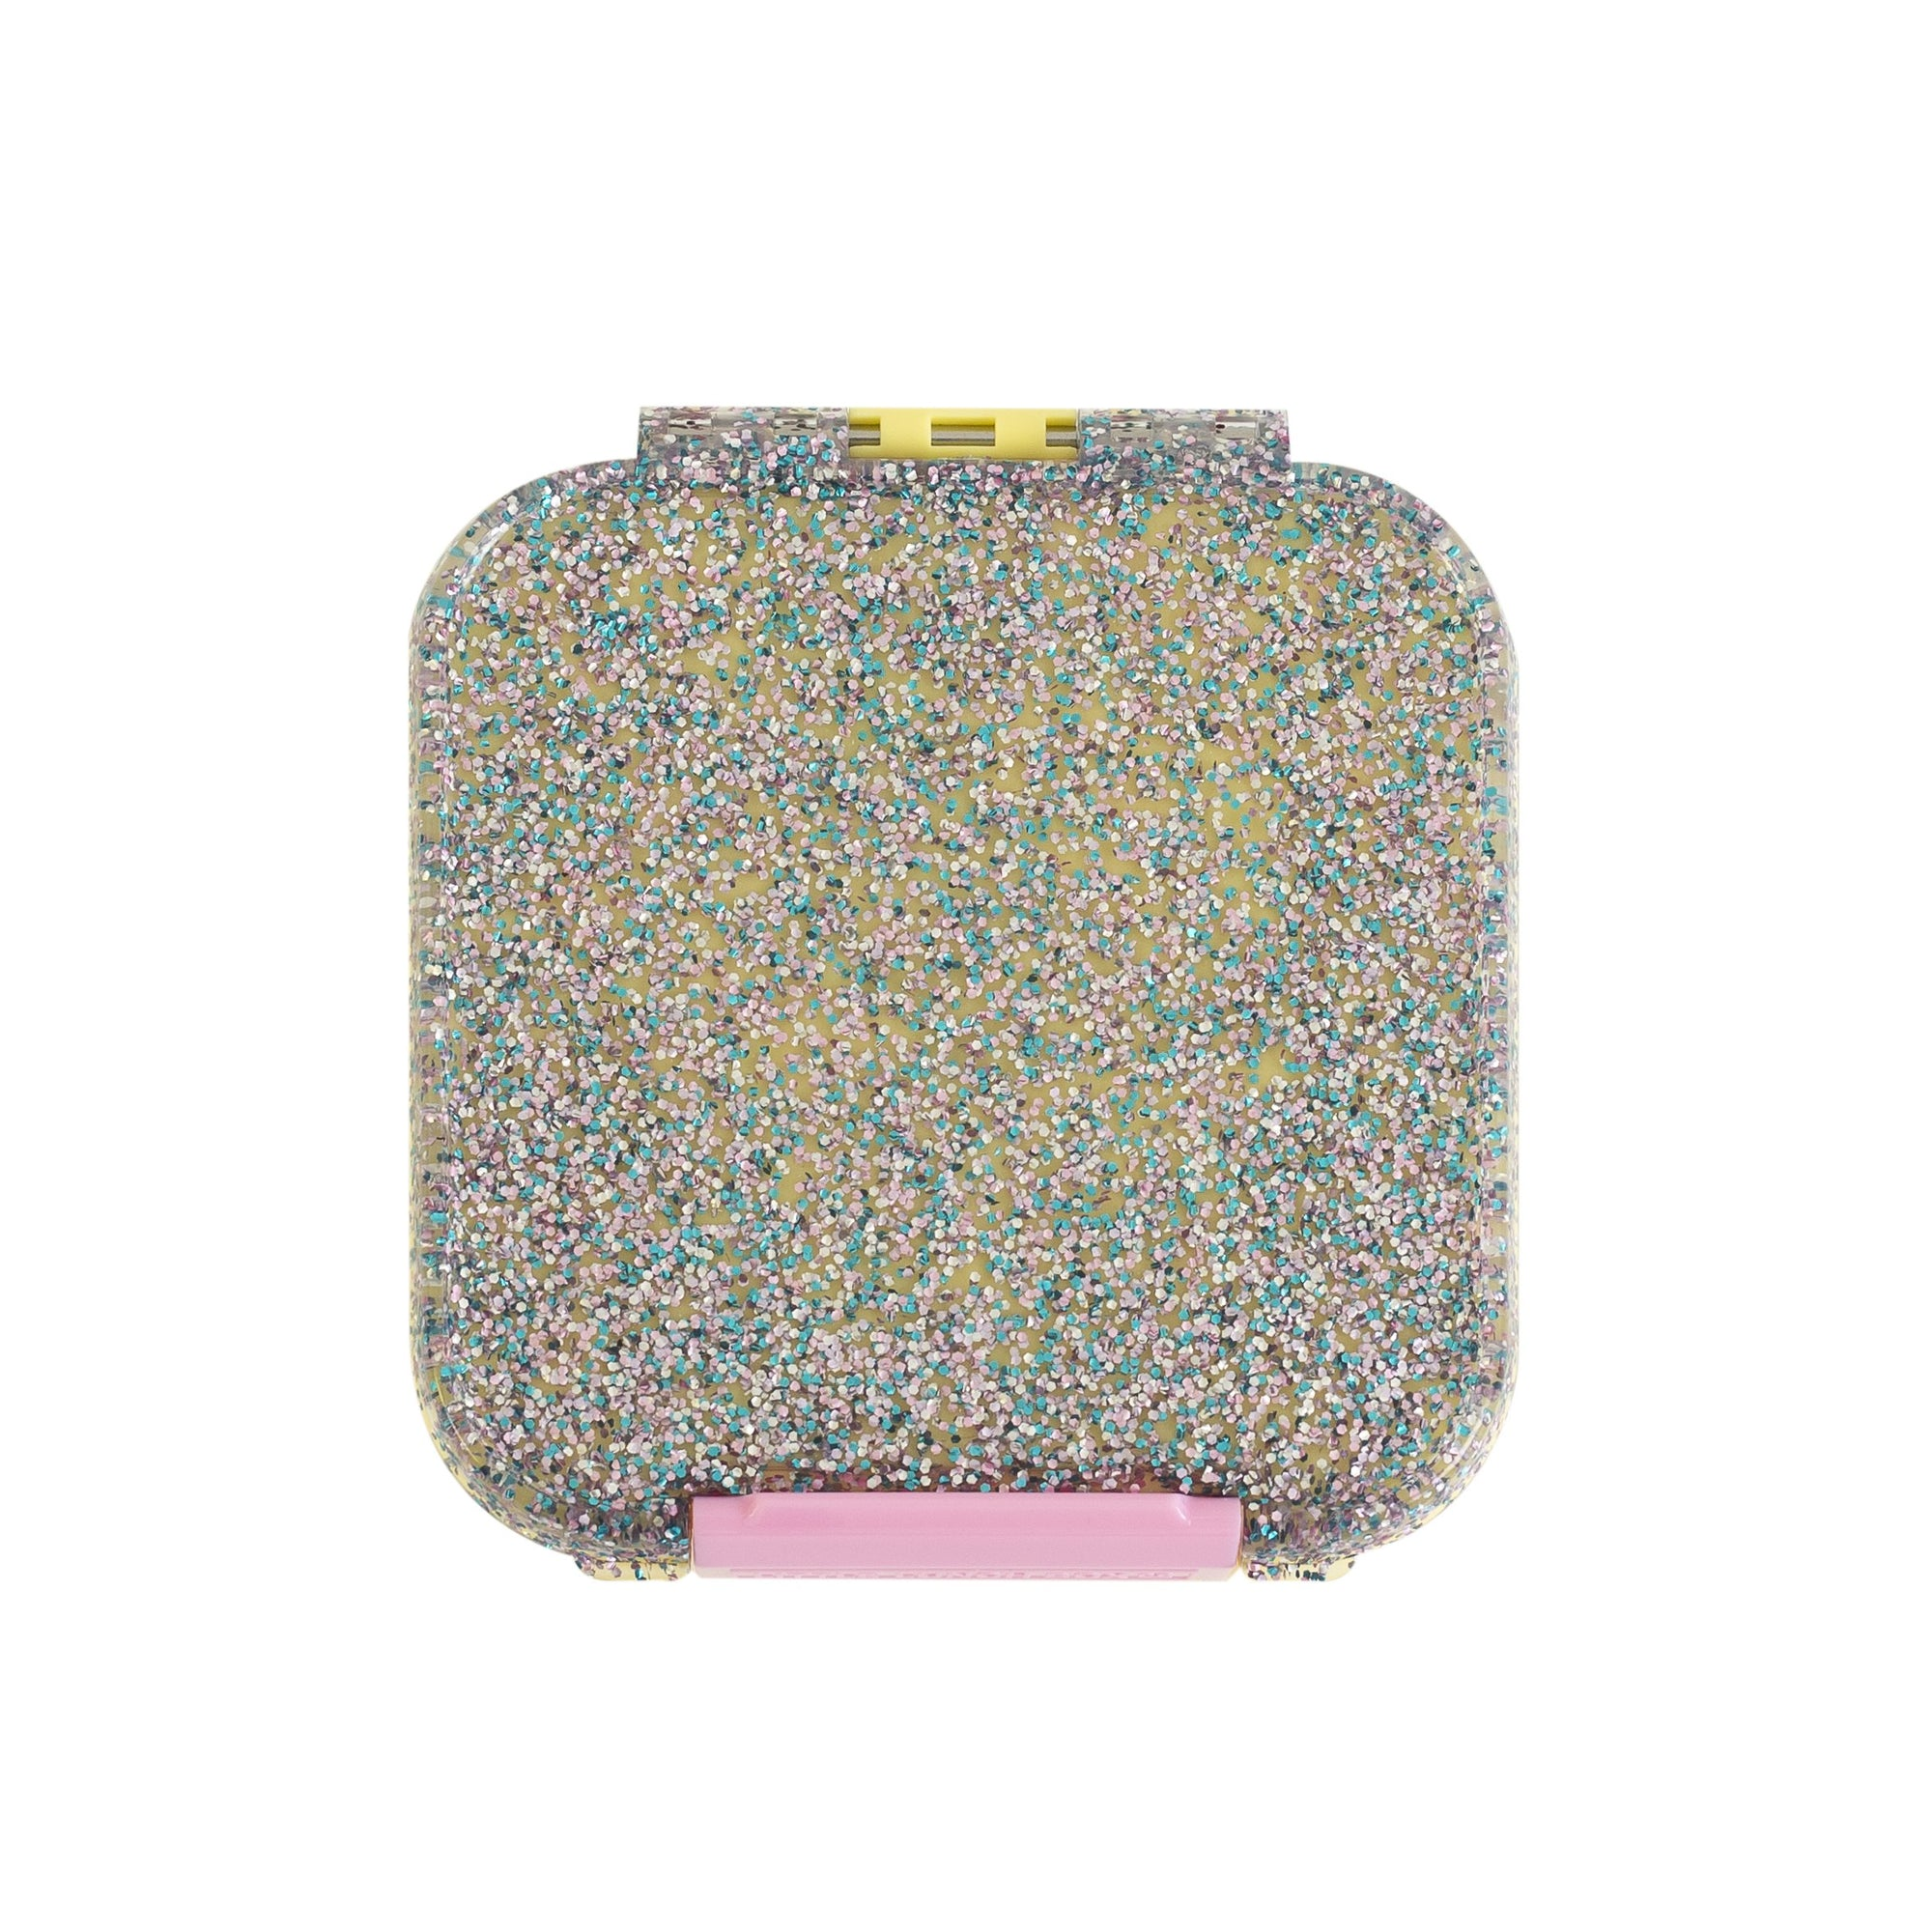 Little Lunch Box Co - Bento Two - Yellow Glitter